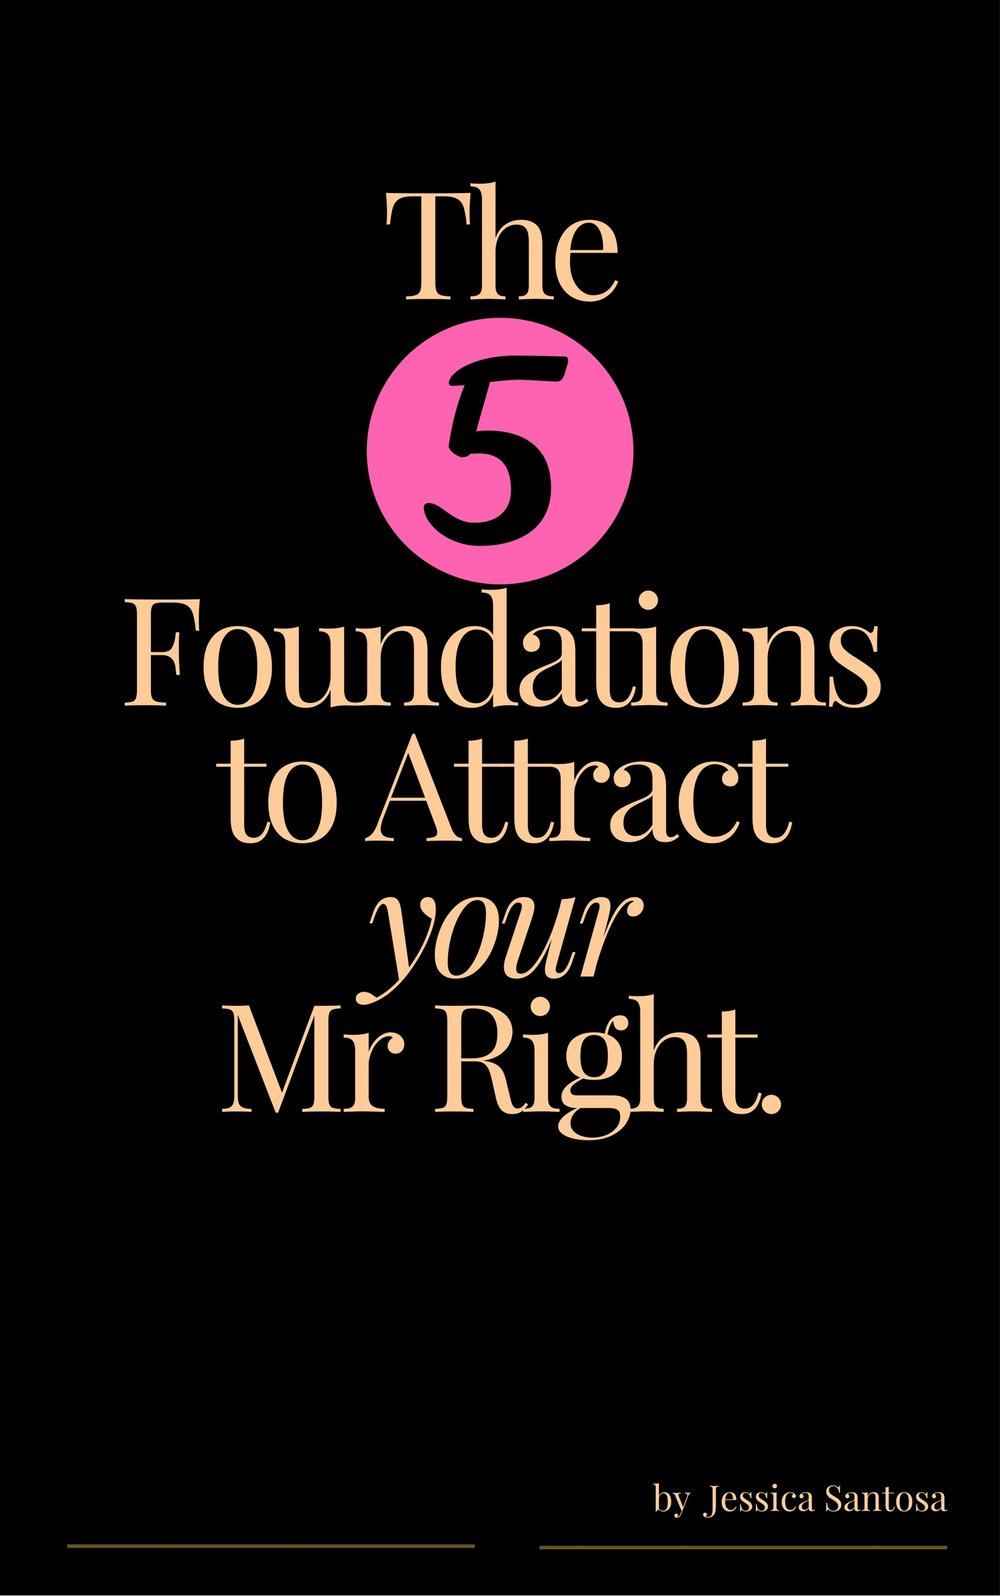 The 5 Foundations to Attract Your Mr Right (2).jpg